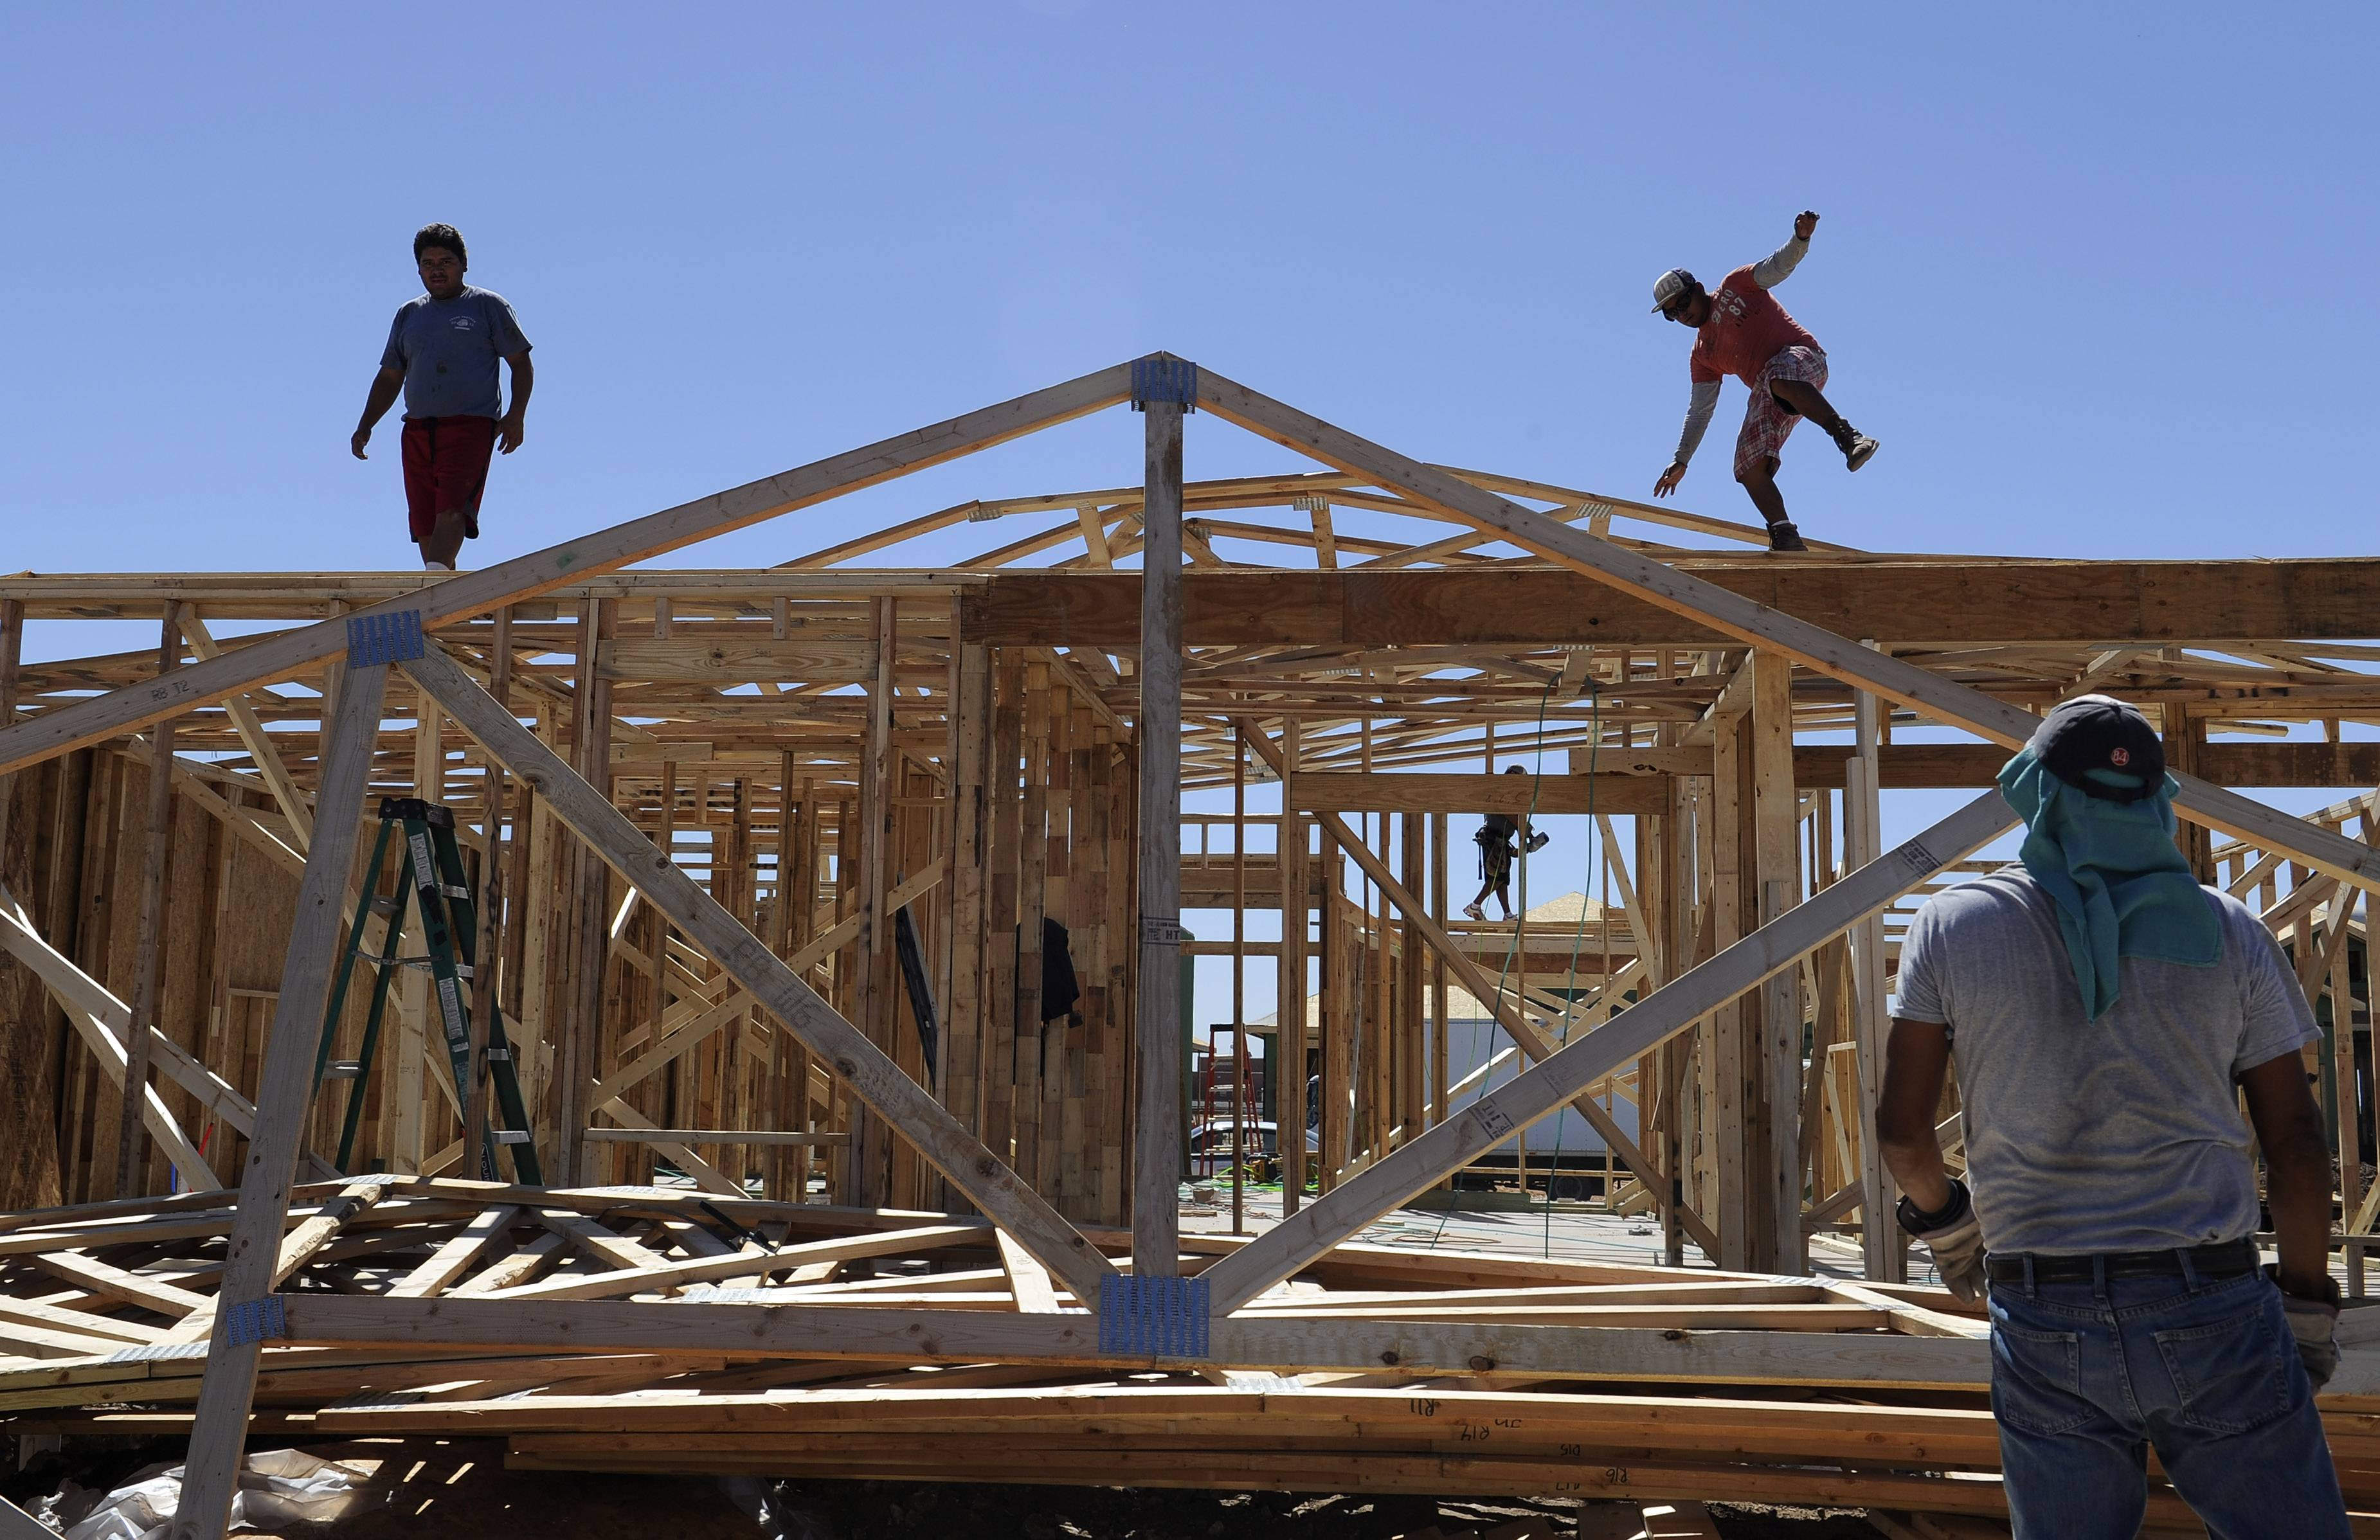 A man steadies himself as he and others work on framing new houses, in Odessa, Texas. America's energy boom is fueling population growth west of the Mississippi River.